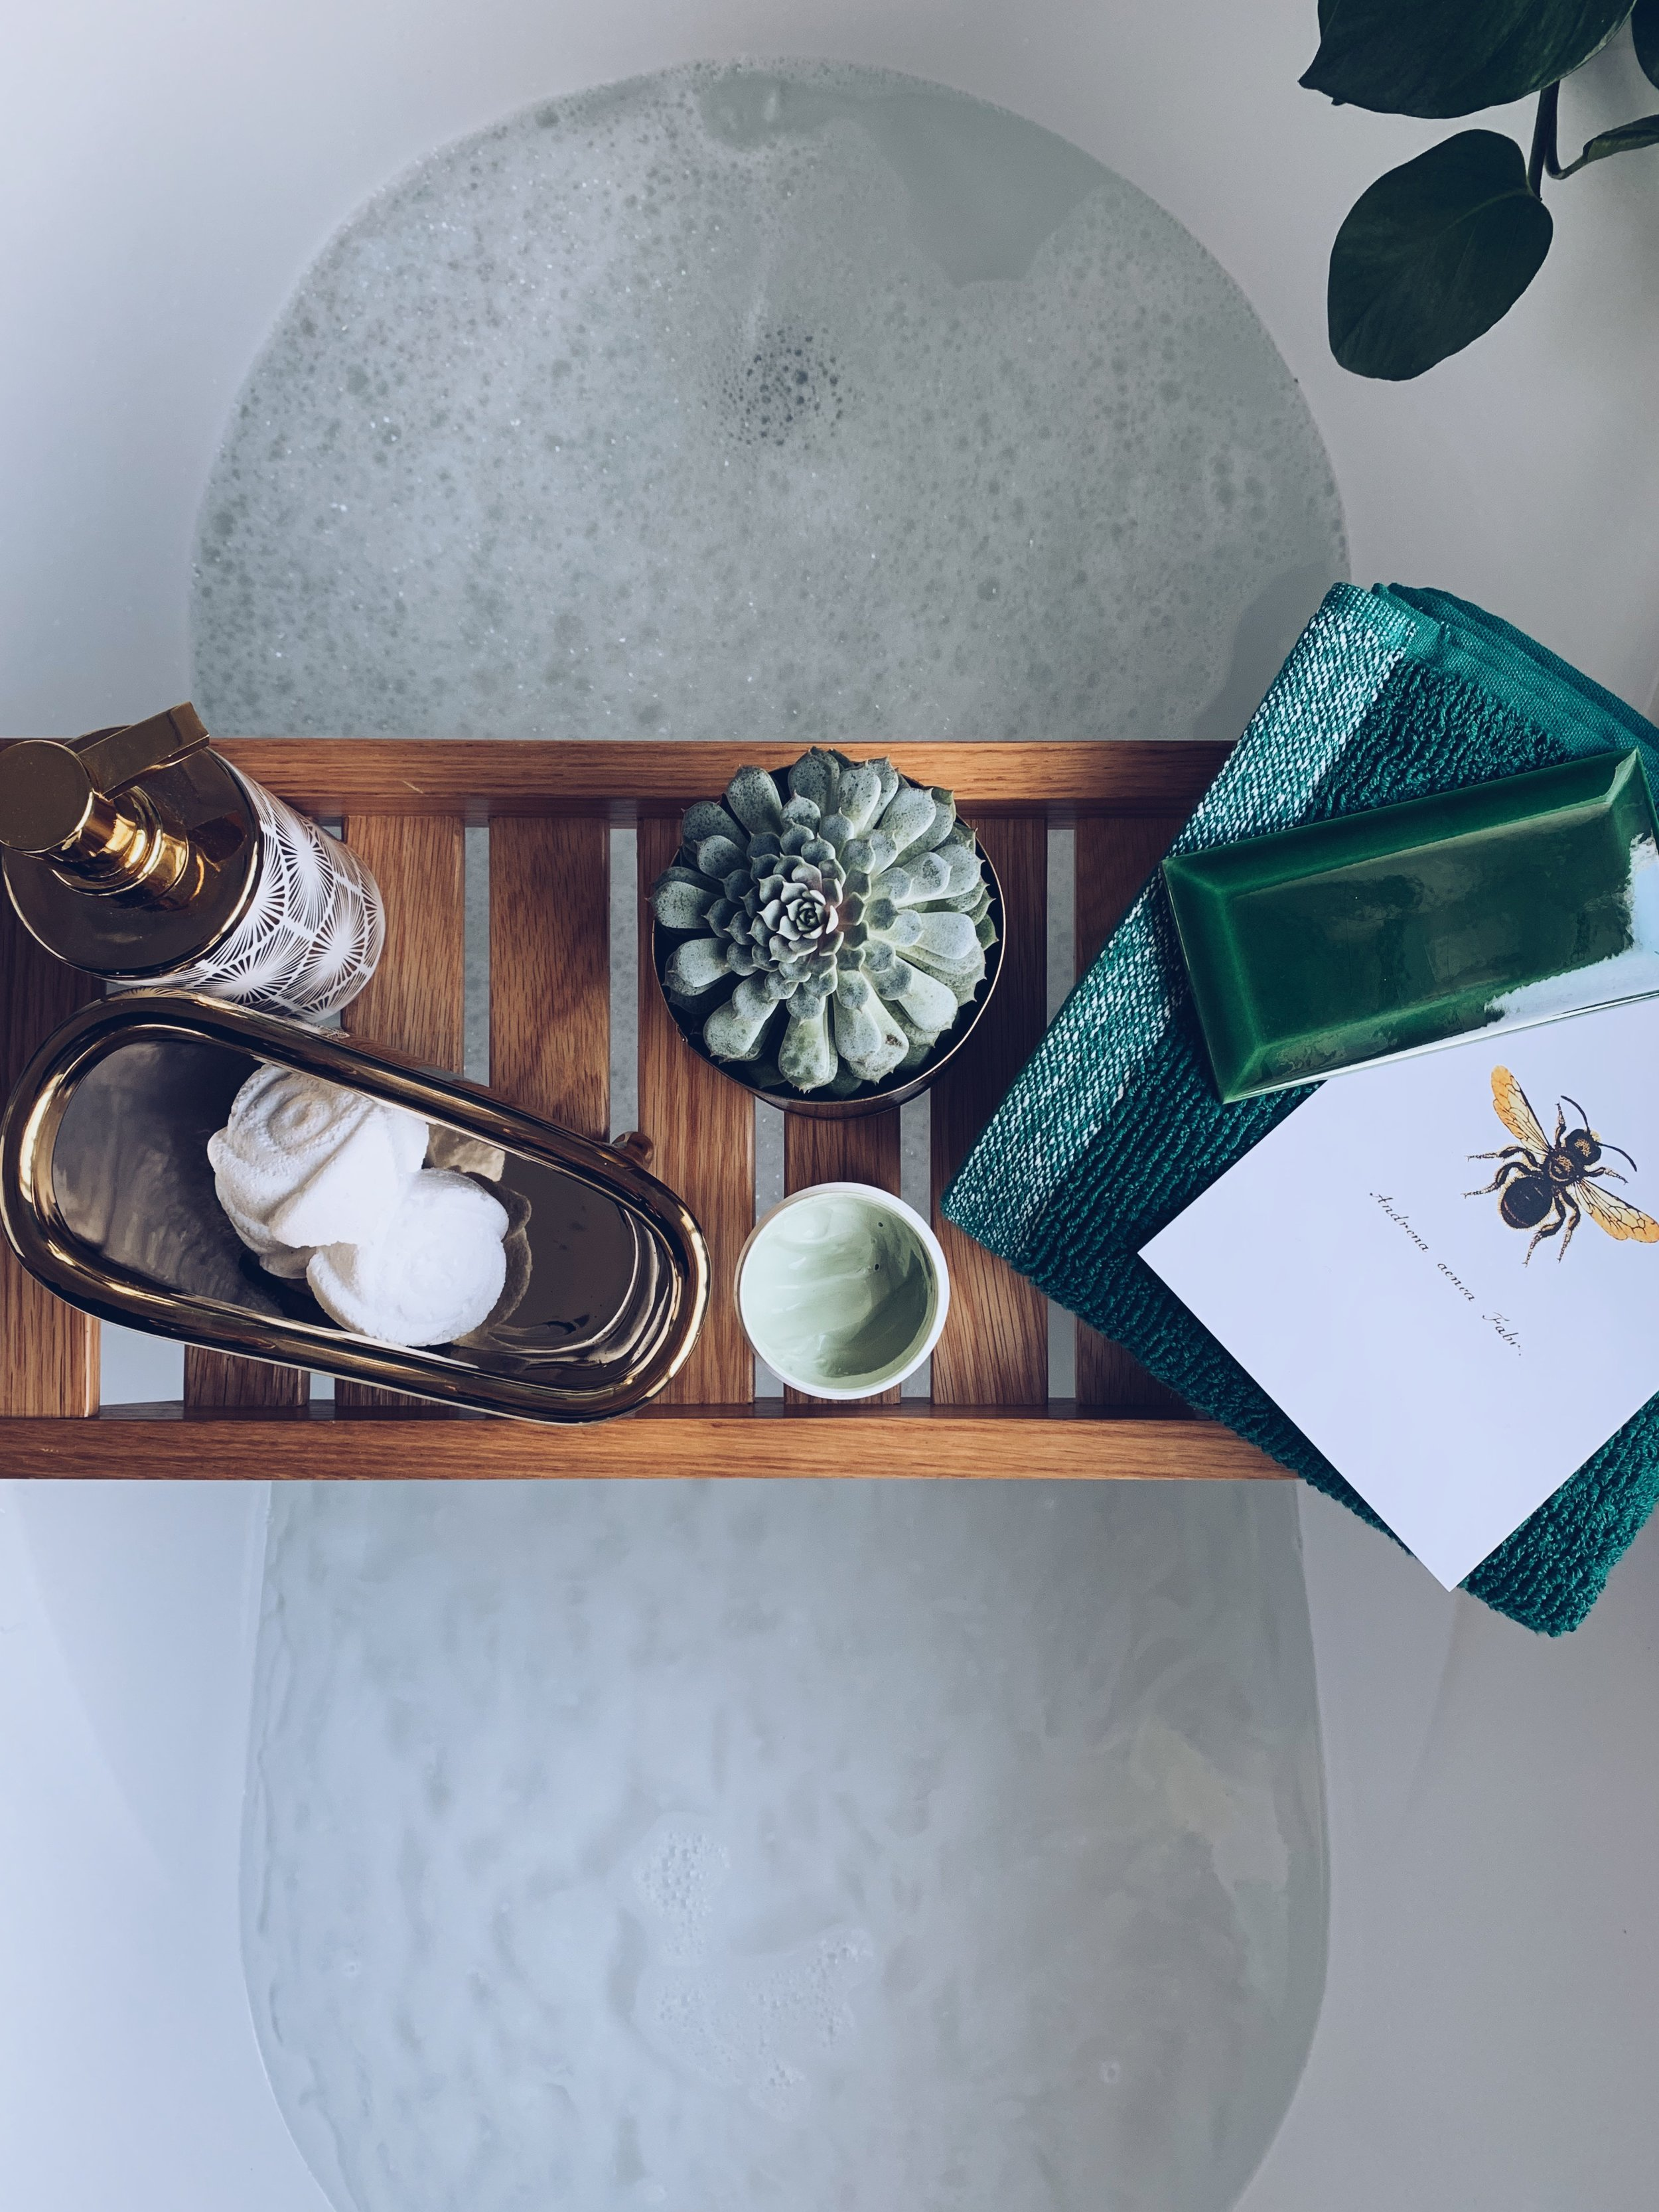 Bathroom flatlay using Crackle Bevel Vintage Green tile